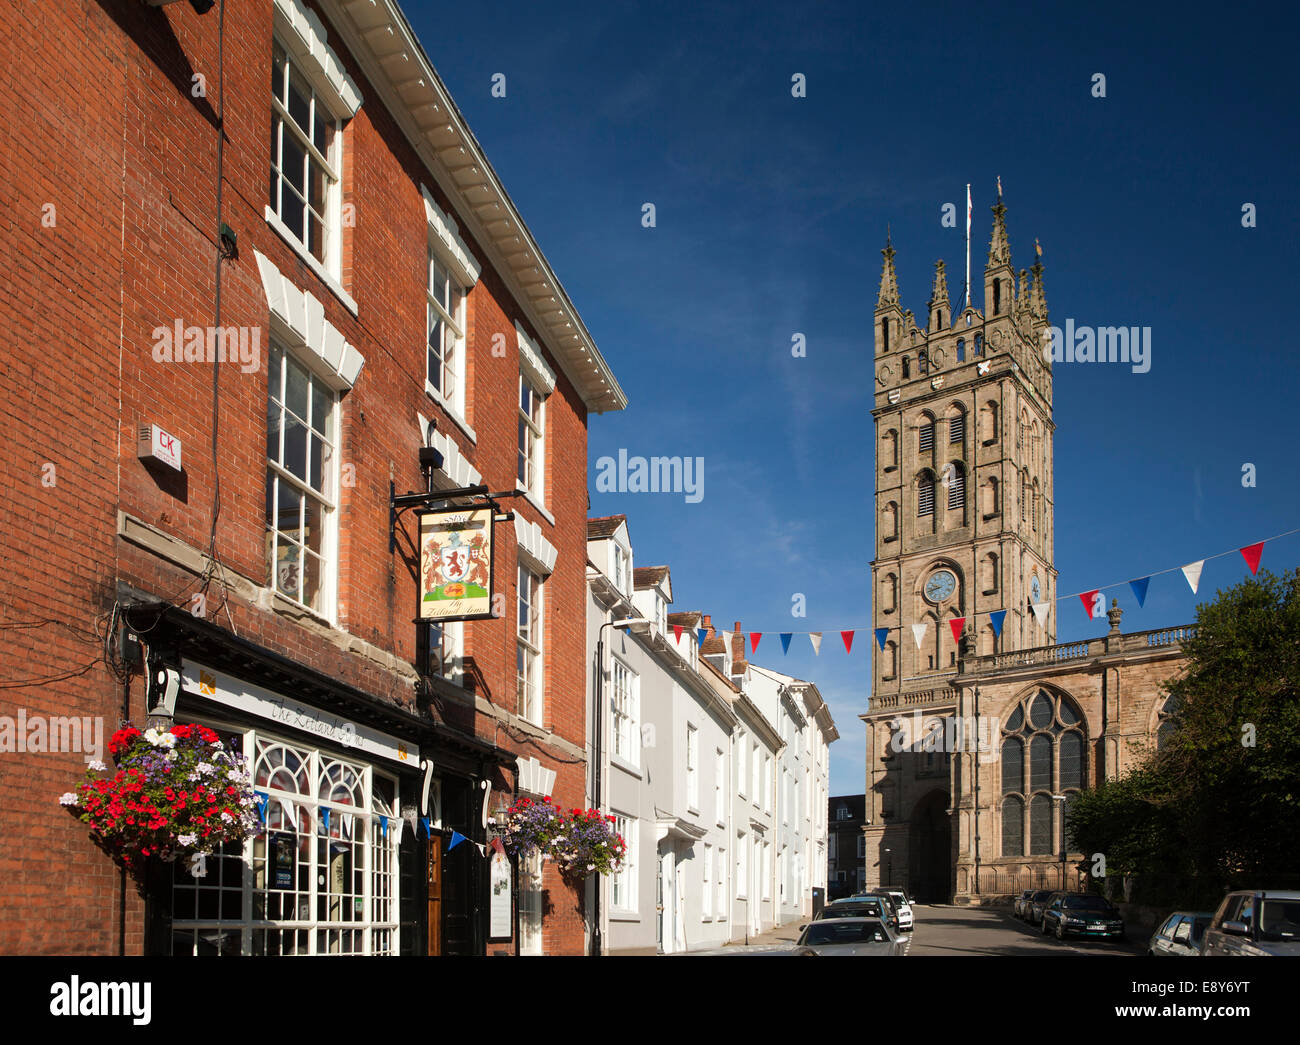 UK, England, Warwickshire, Warwick, Church Street, Zetland Arms pub and St Mary' Collegiate church tower - Stock Image